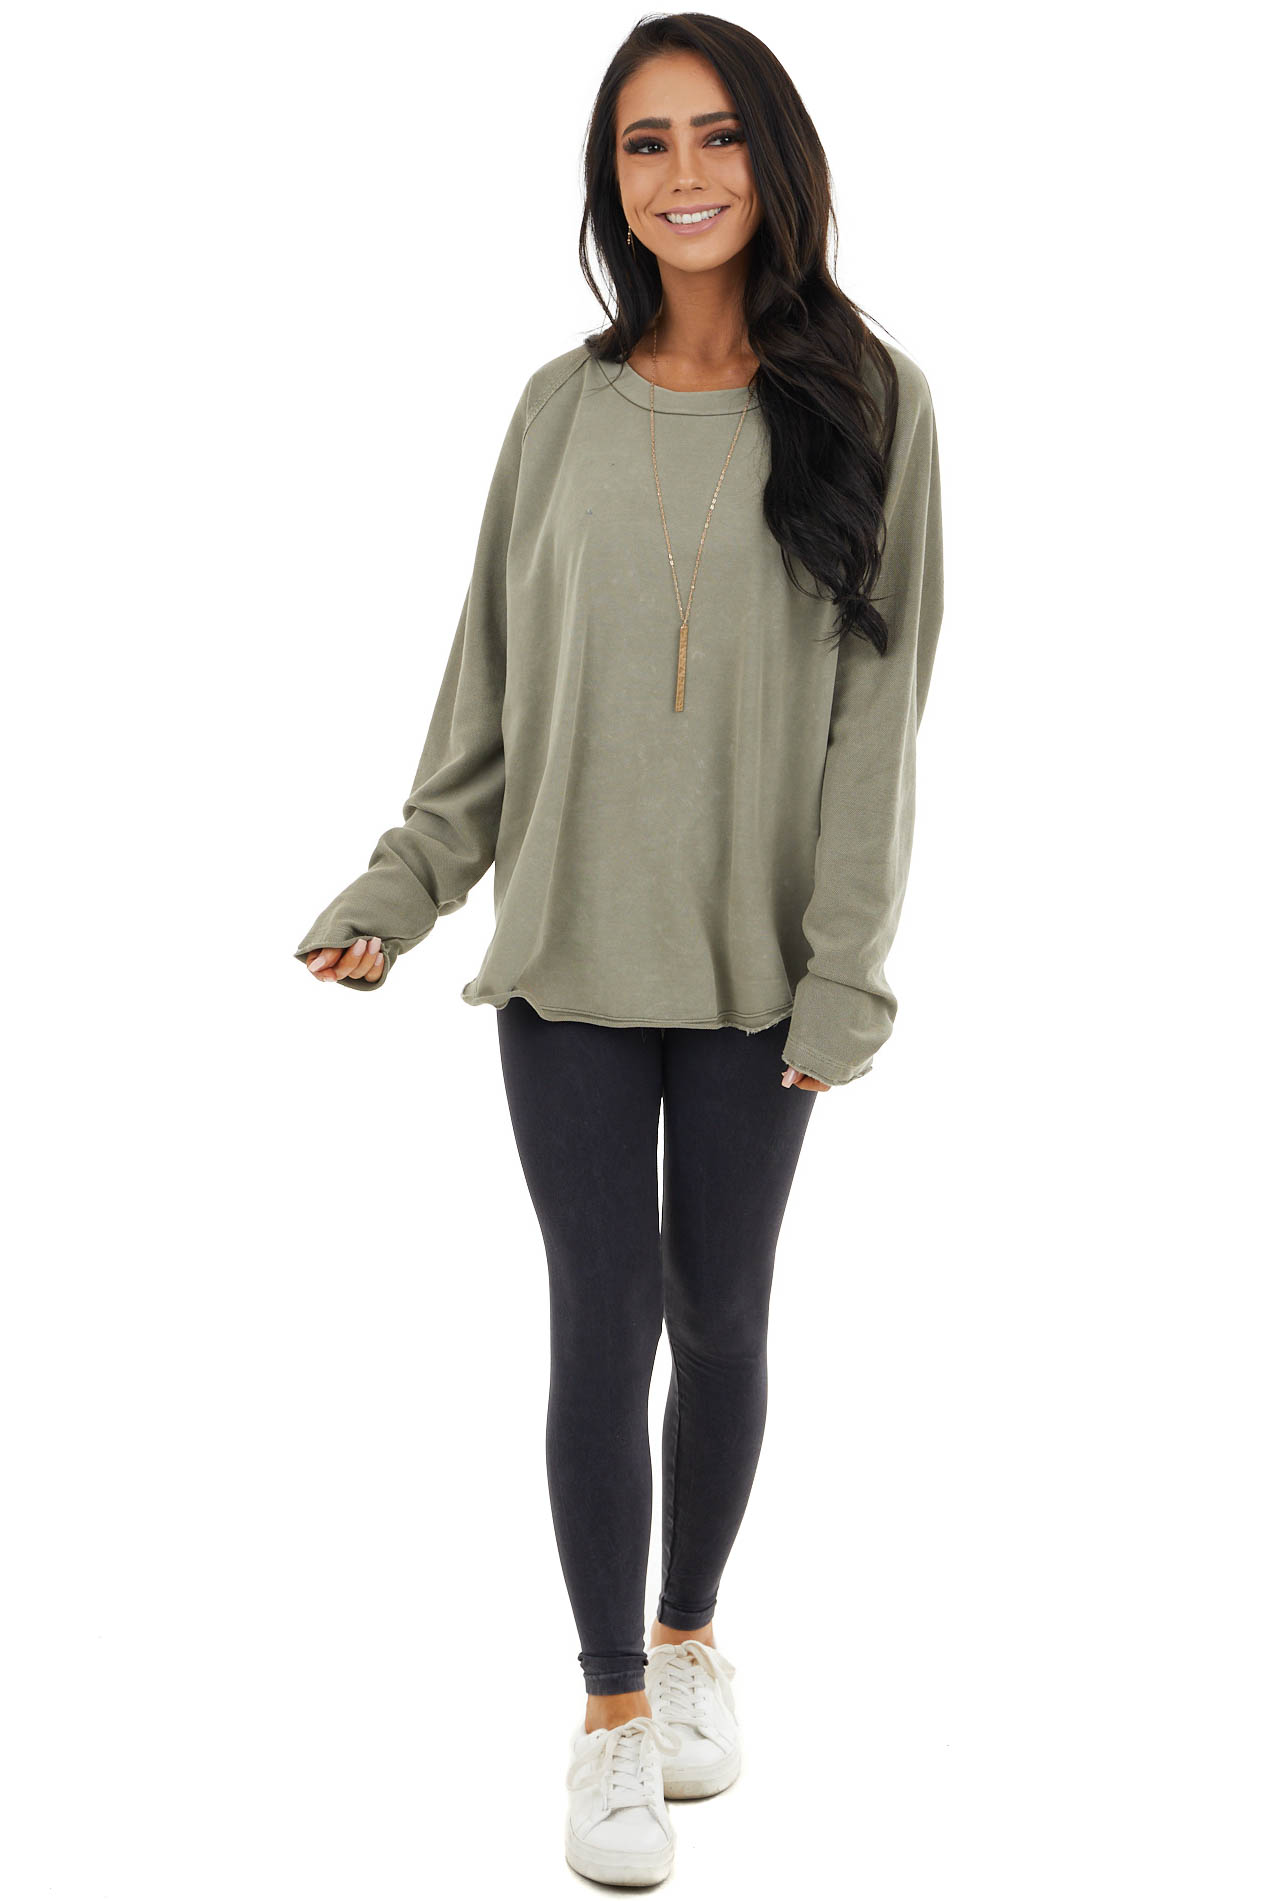 Vintage Taupe Top with Contrast Knit and Raw Edge Details